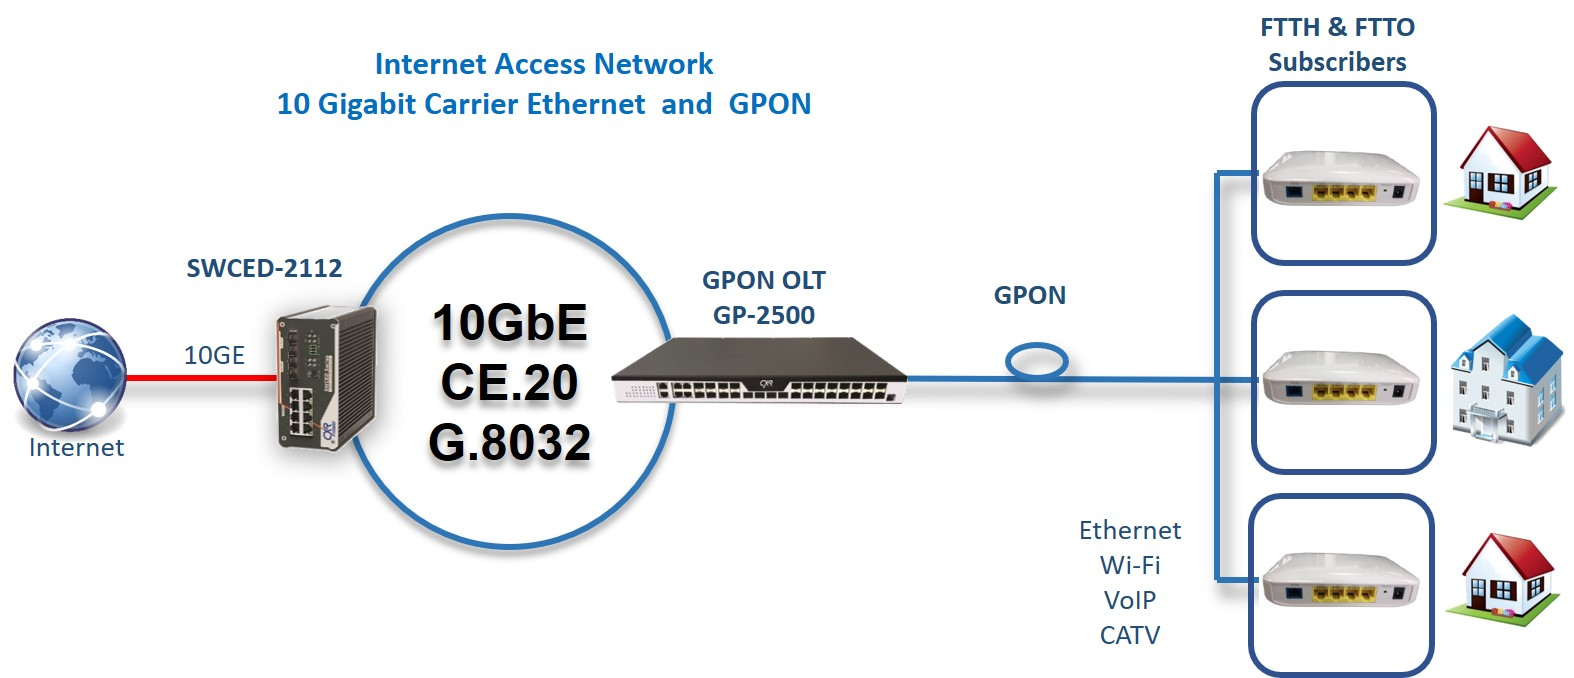 CE2.0 Carrier Ethernet and GPON Internet access